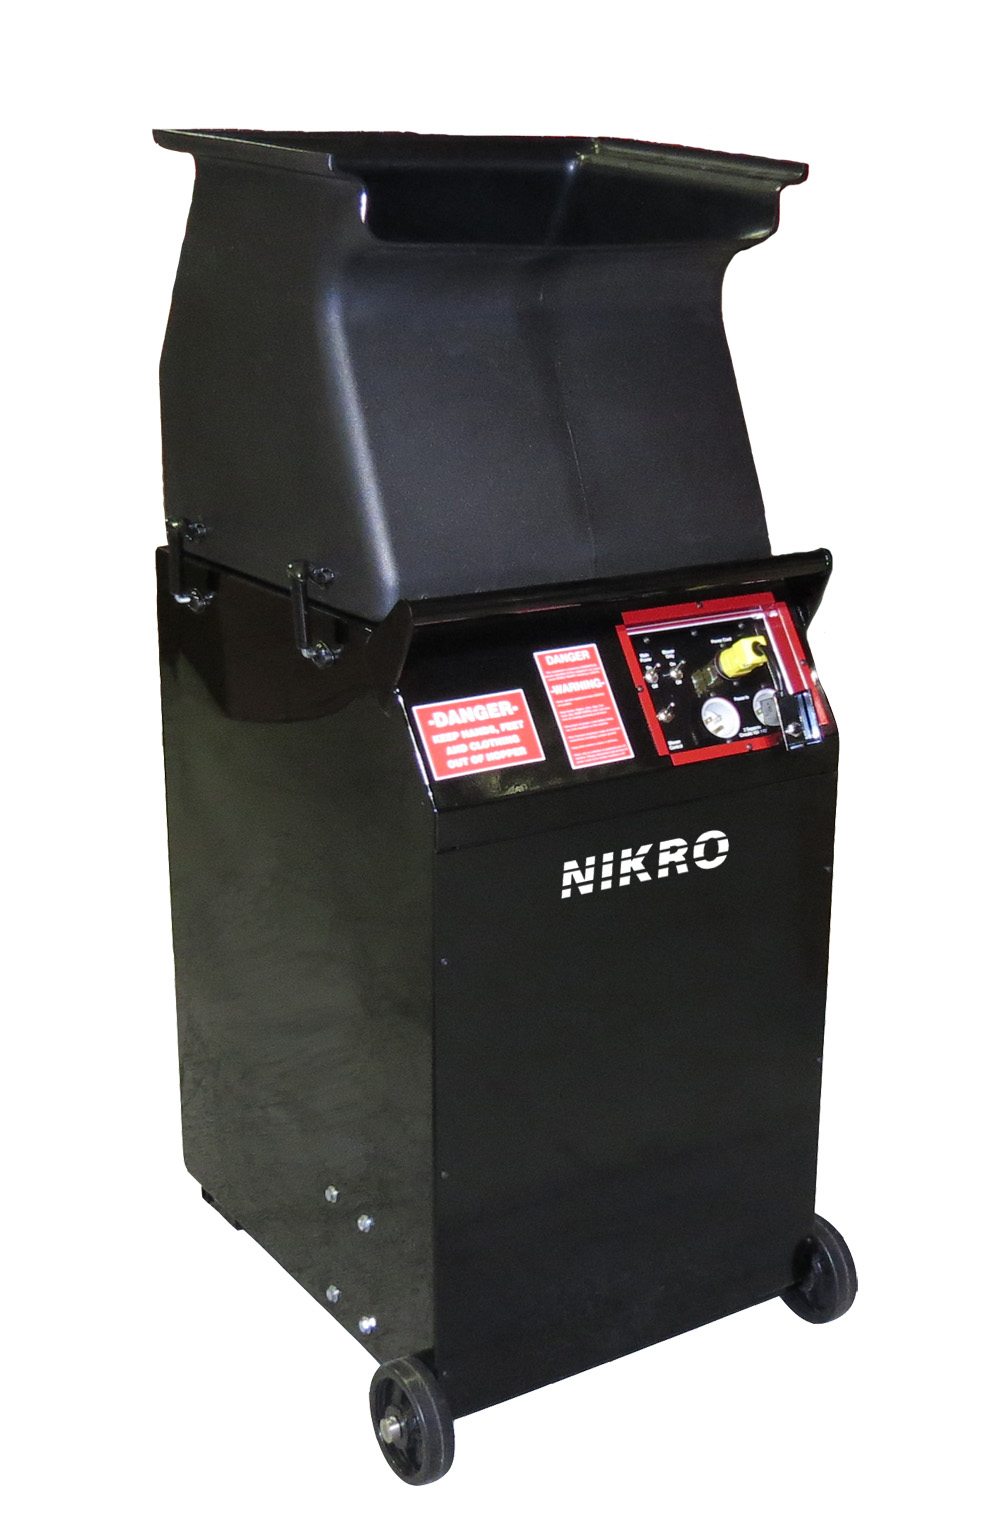 Insulation Blowing Machine   - NIKRO INDUSTRIES, INC.